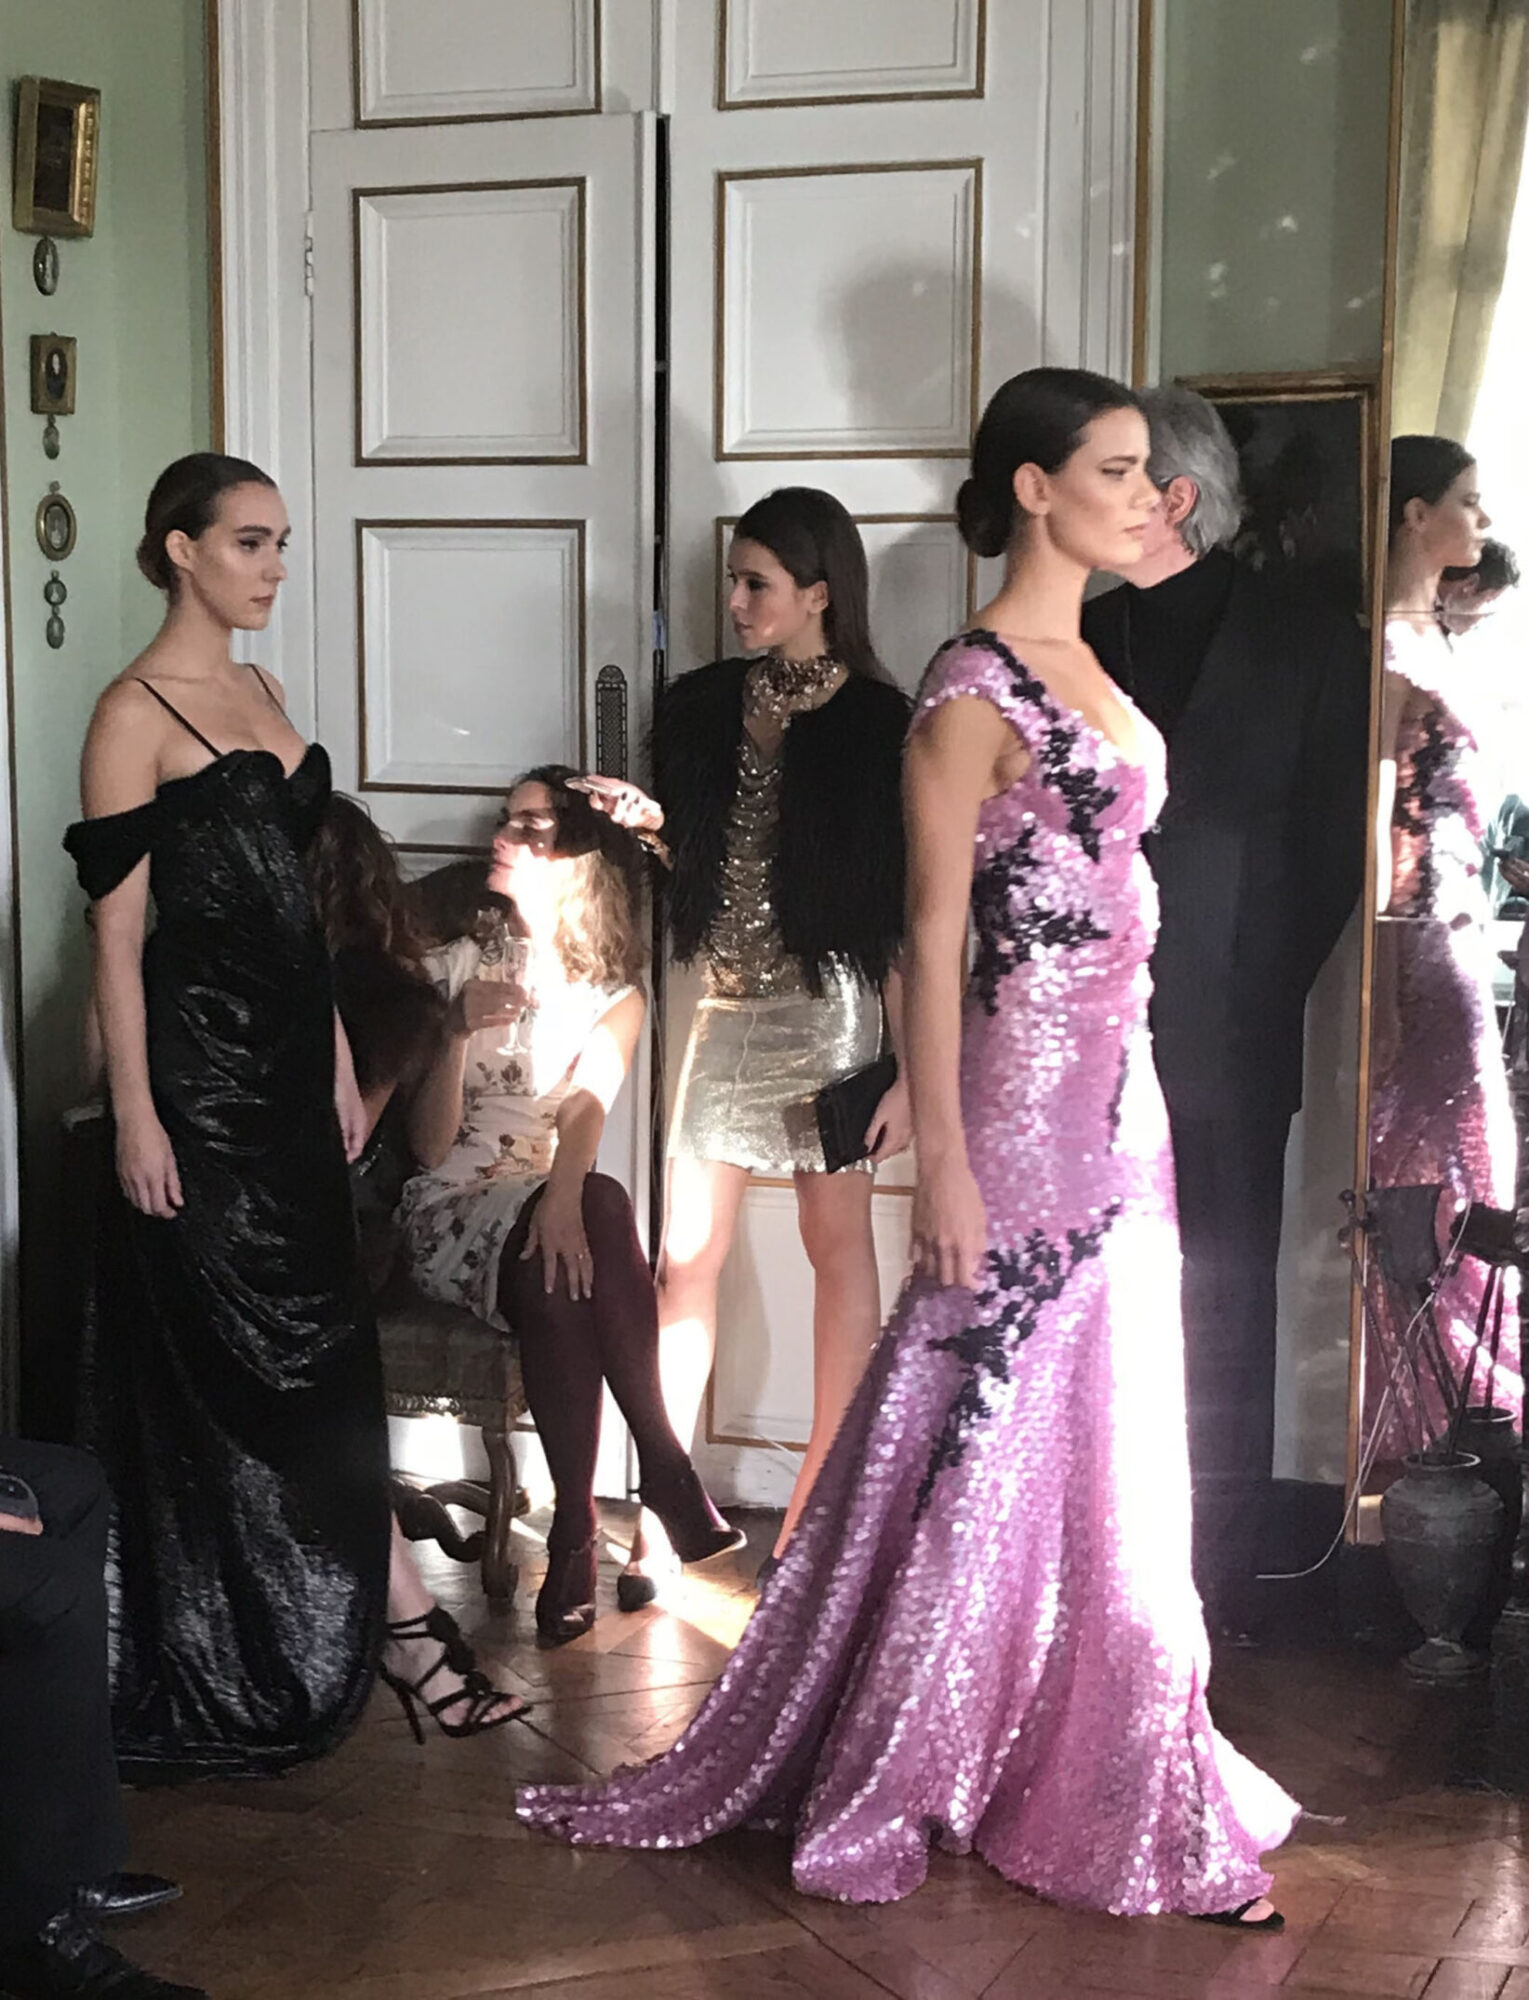 Salon presentation, Haute Couture mastery by Eymeric François